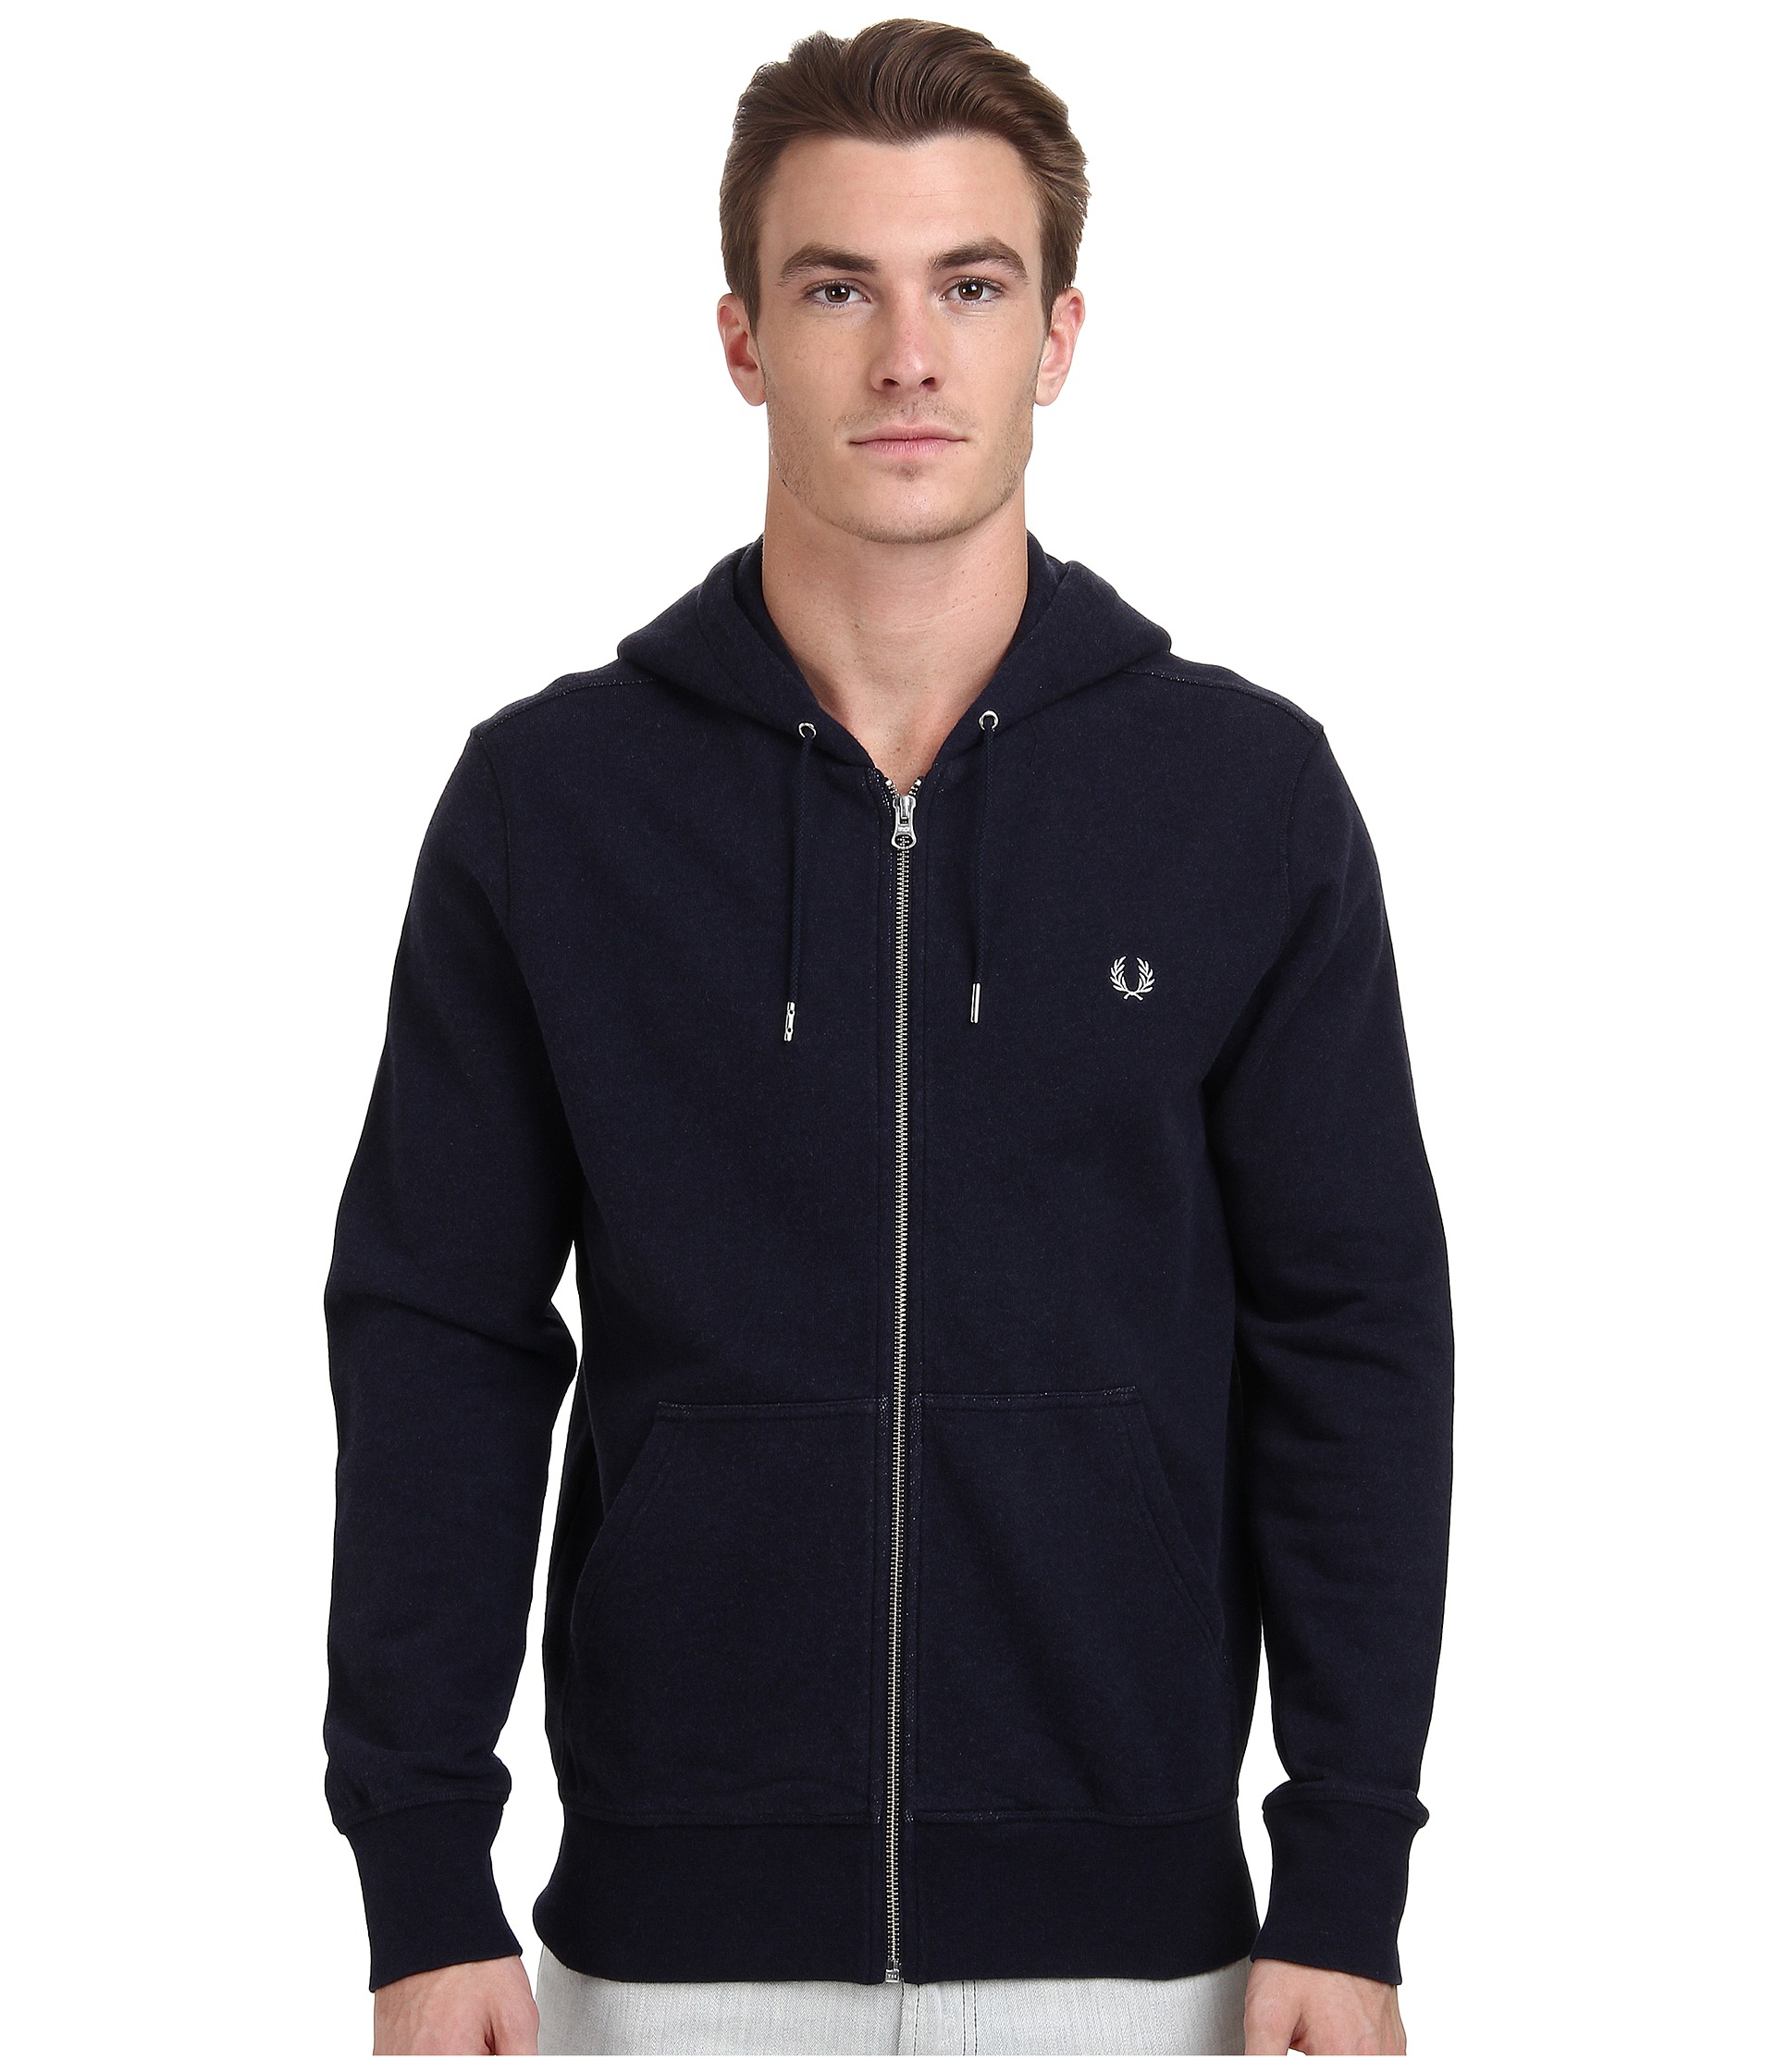 Fred perry jacket sweat